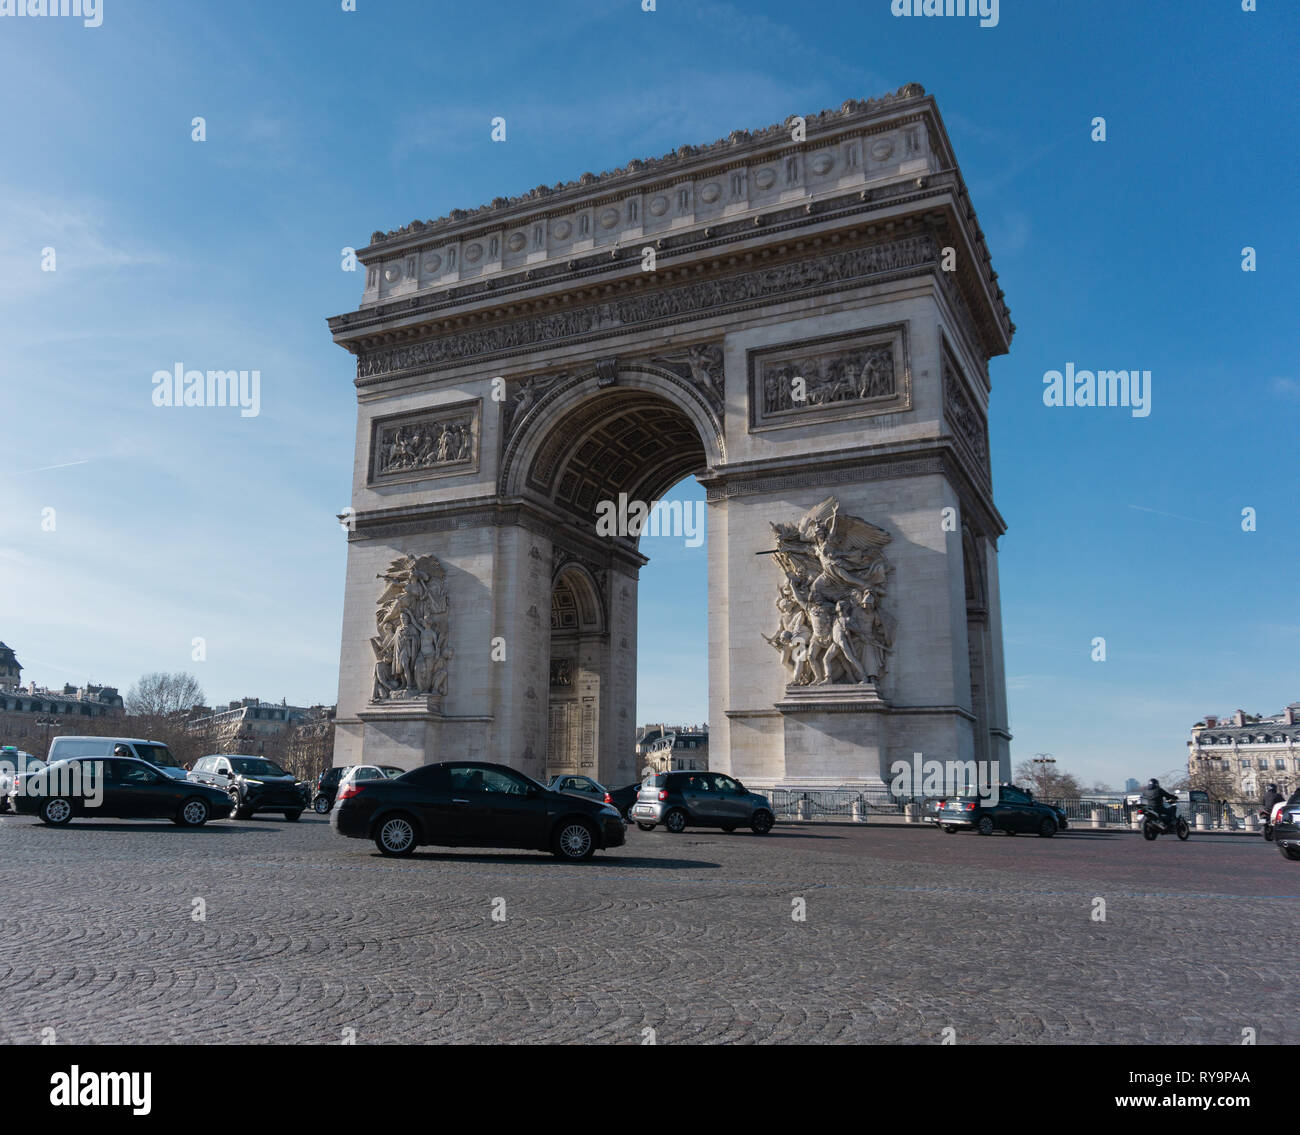 Arc de triomphe daytime traffic daylight shot horizontal - Stock Image